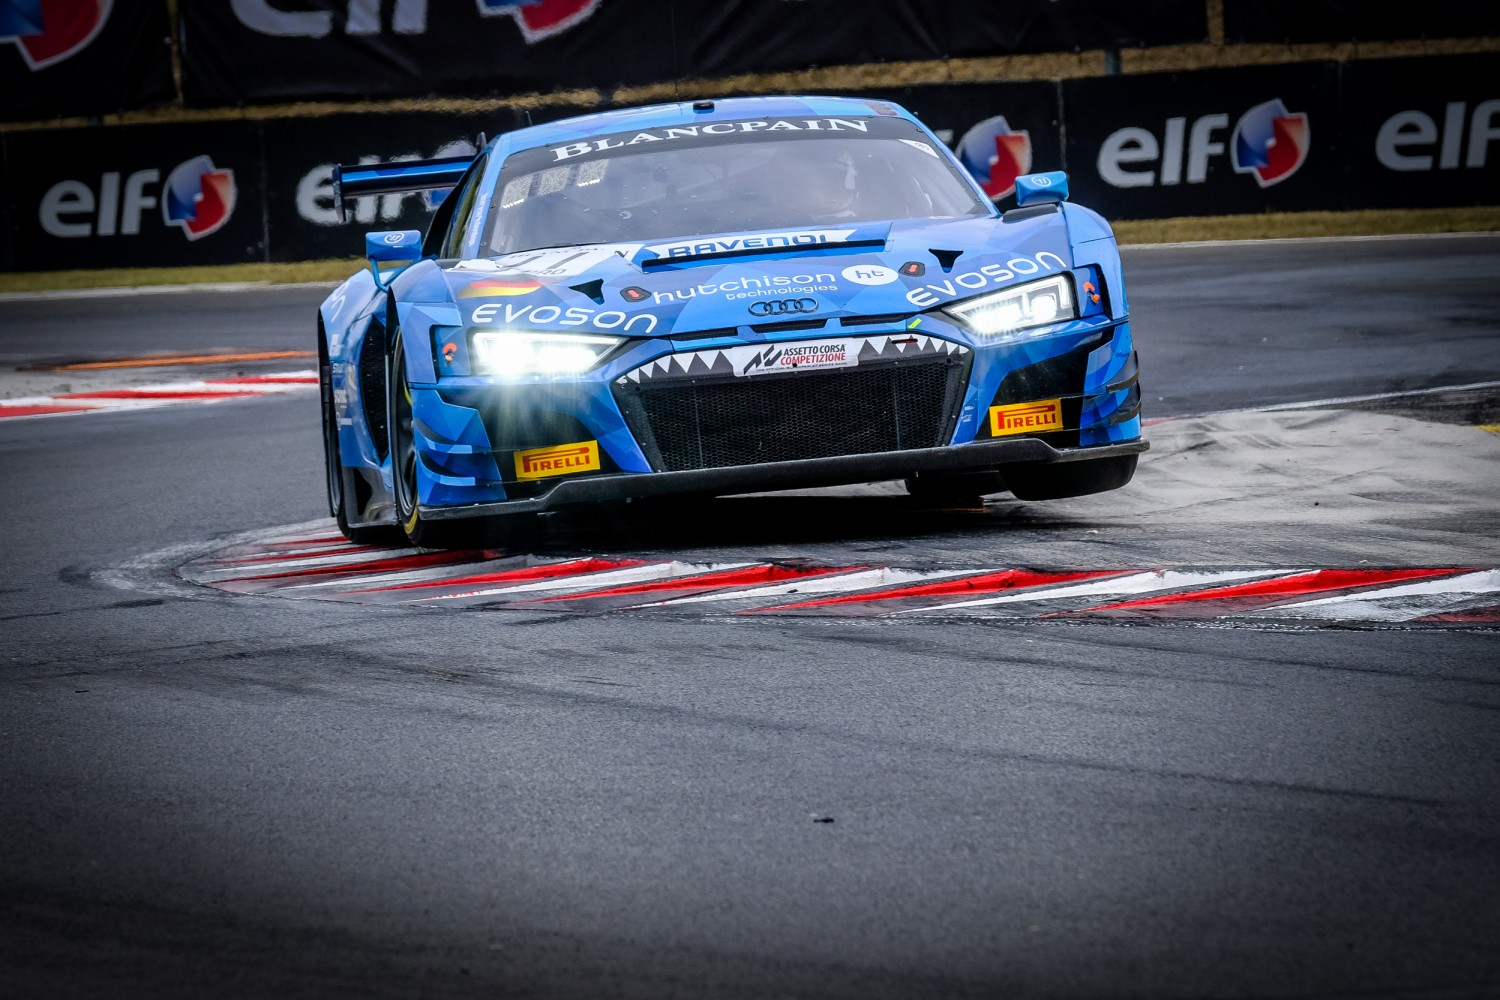 #11 Phoenix Racing DEU Audi R8 LMS GT3 2019 Finlay Hutchison GBR Frederic Vervisch BEL -, Qualifying  | SRO / Dirk Bogaerts Photography